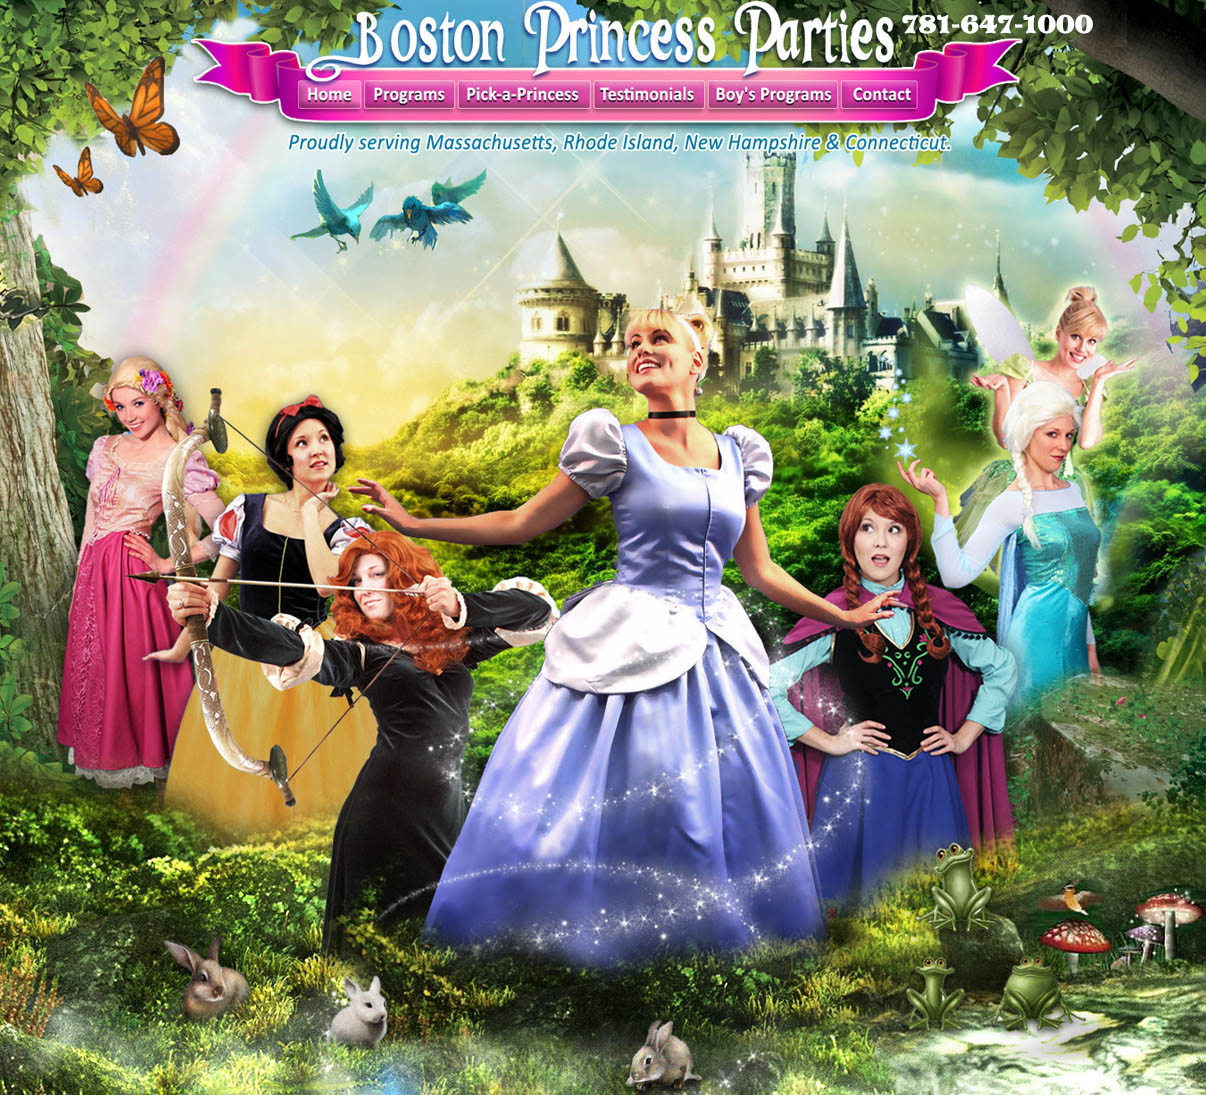 Boston Princess Party, Boston Princess Parties